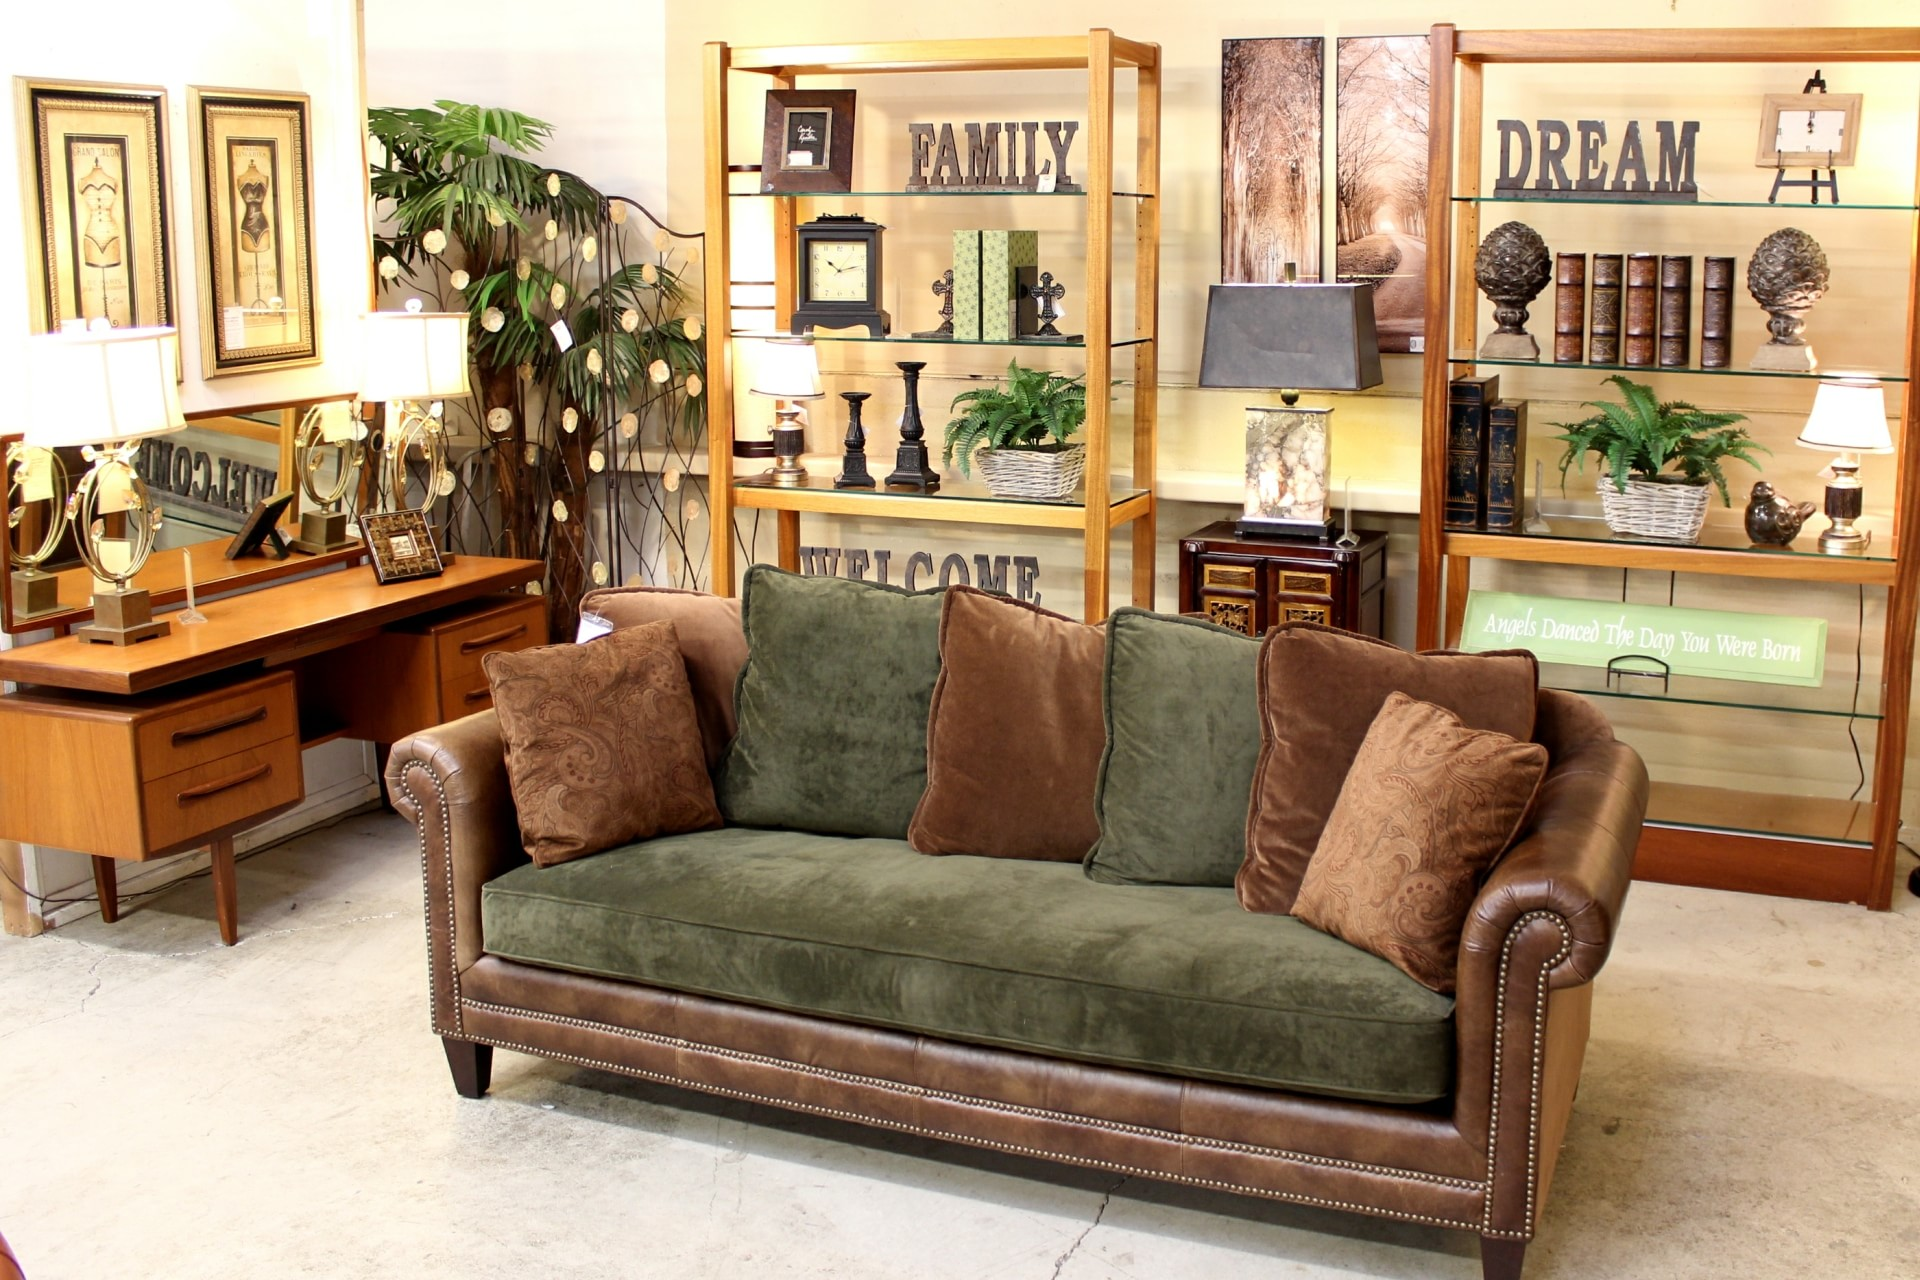 . Upscale Consignment   Upscale Used Furniture   Decor